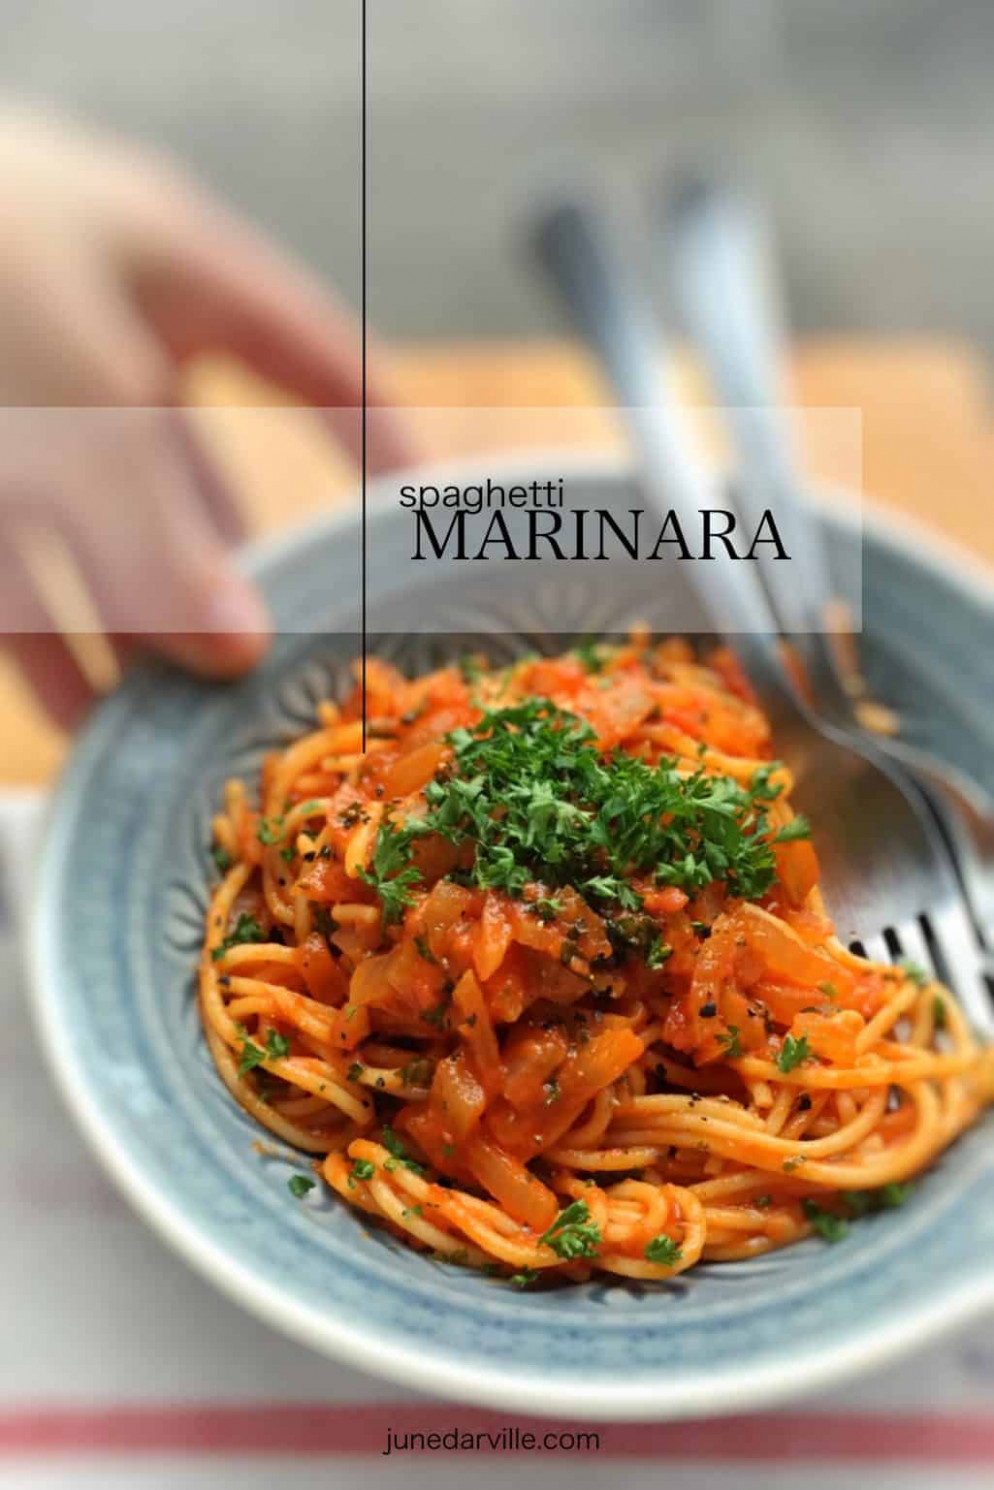 Marinara Sauce Recipe for Spaghetti | Simple. Tasty. Good.